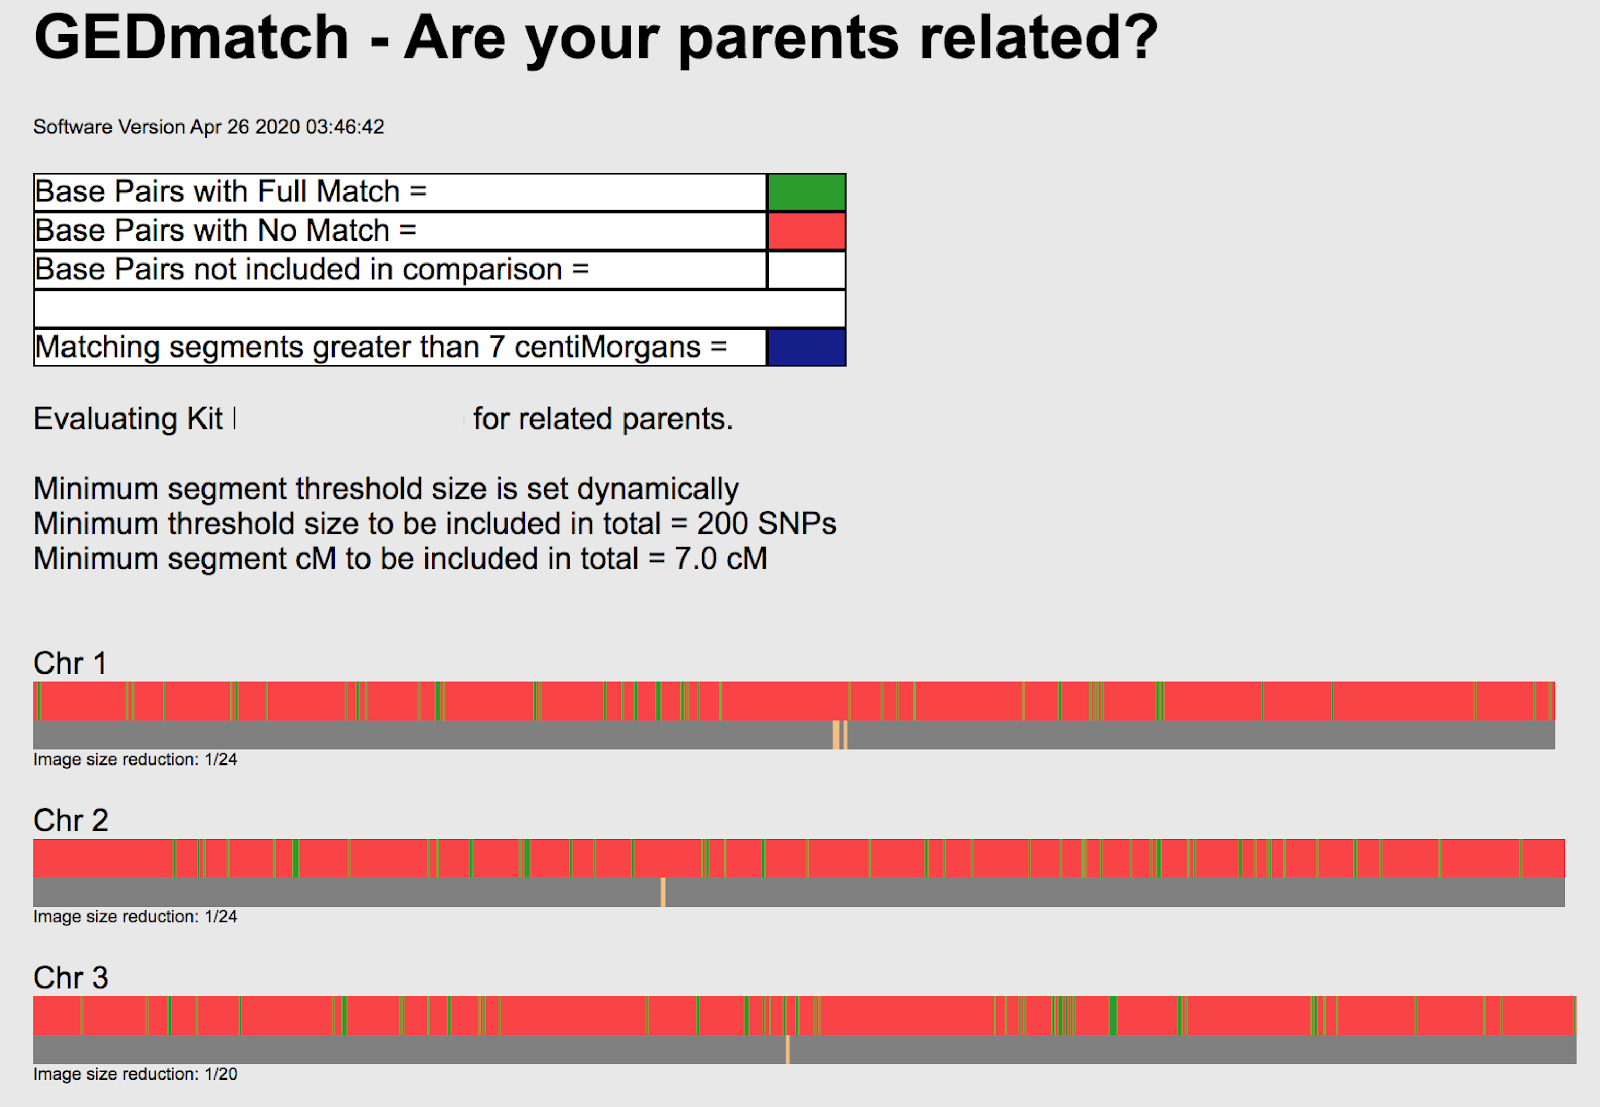 My parents are not related, as evidenced by the few small chunks of green matching SNPs in GEDmatch.